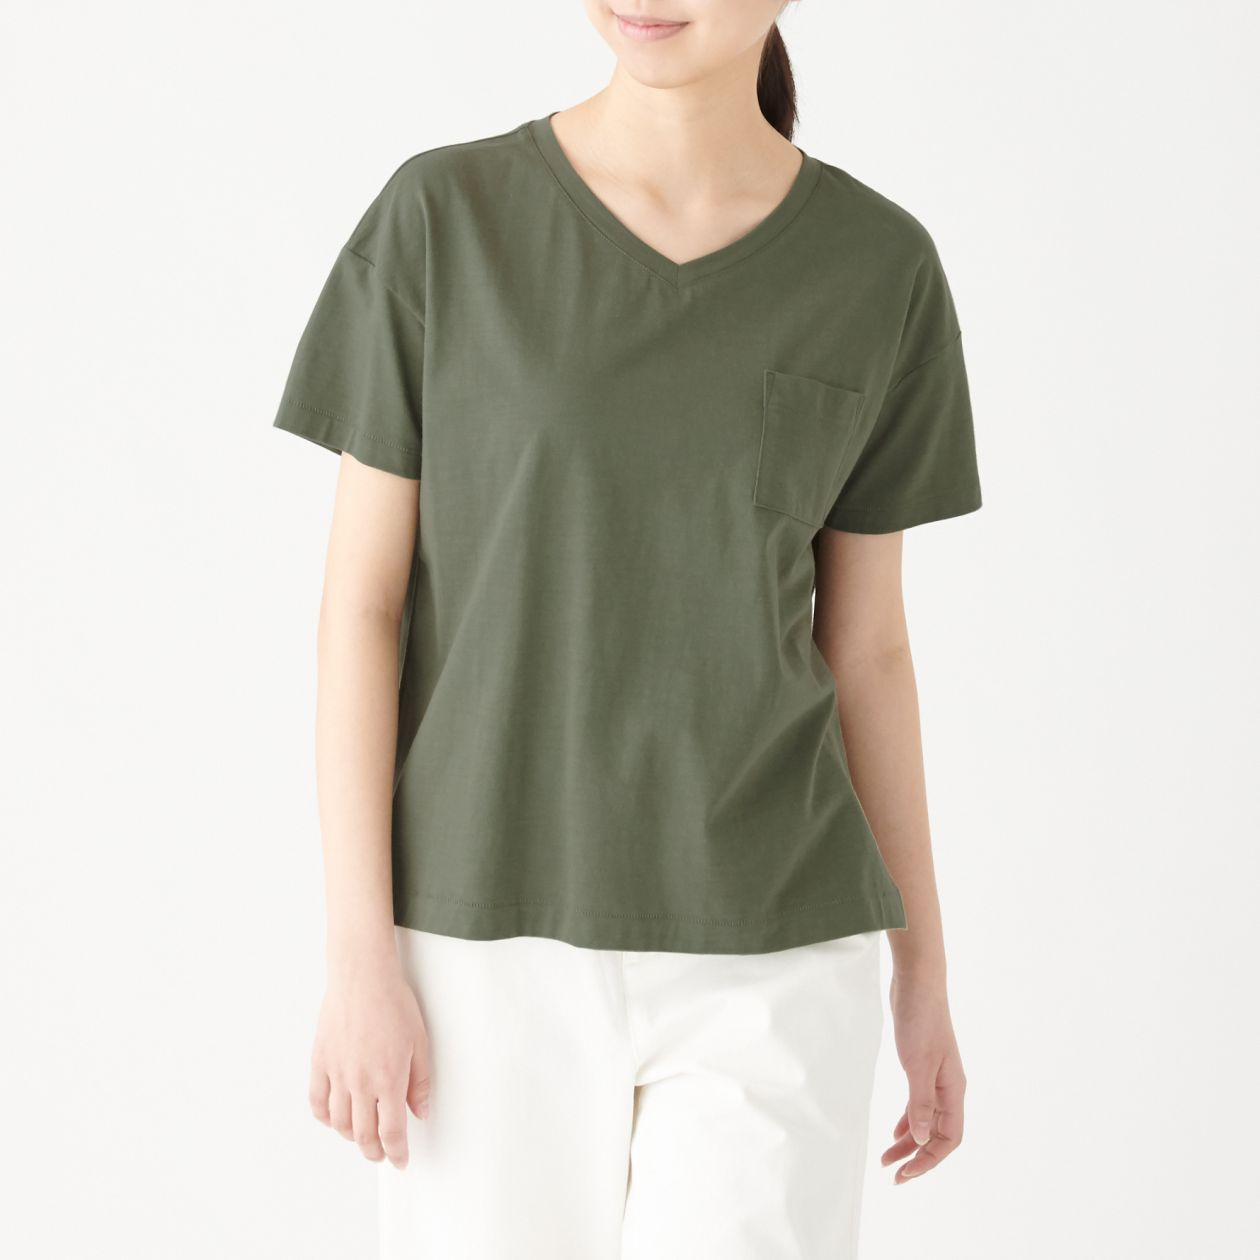 Ladies' Organic Cotton Uneven Yarn Wide T-shirt, Less 10% (U.P. $19.90)